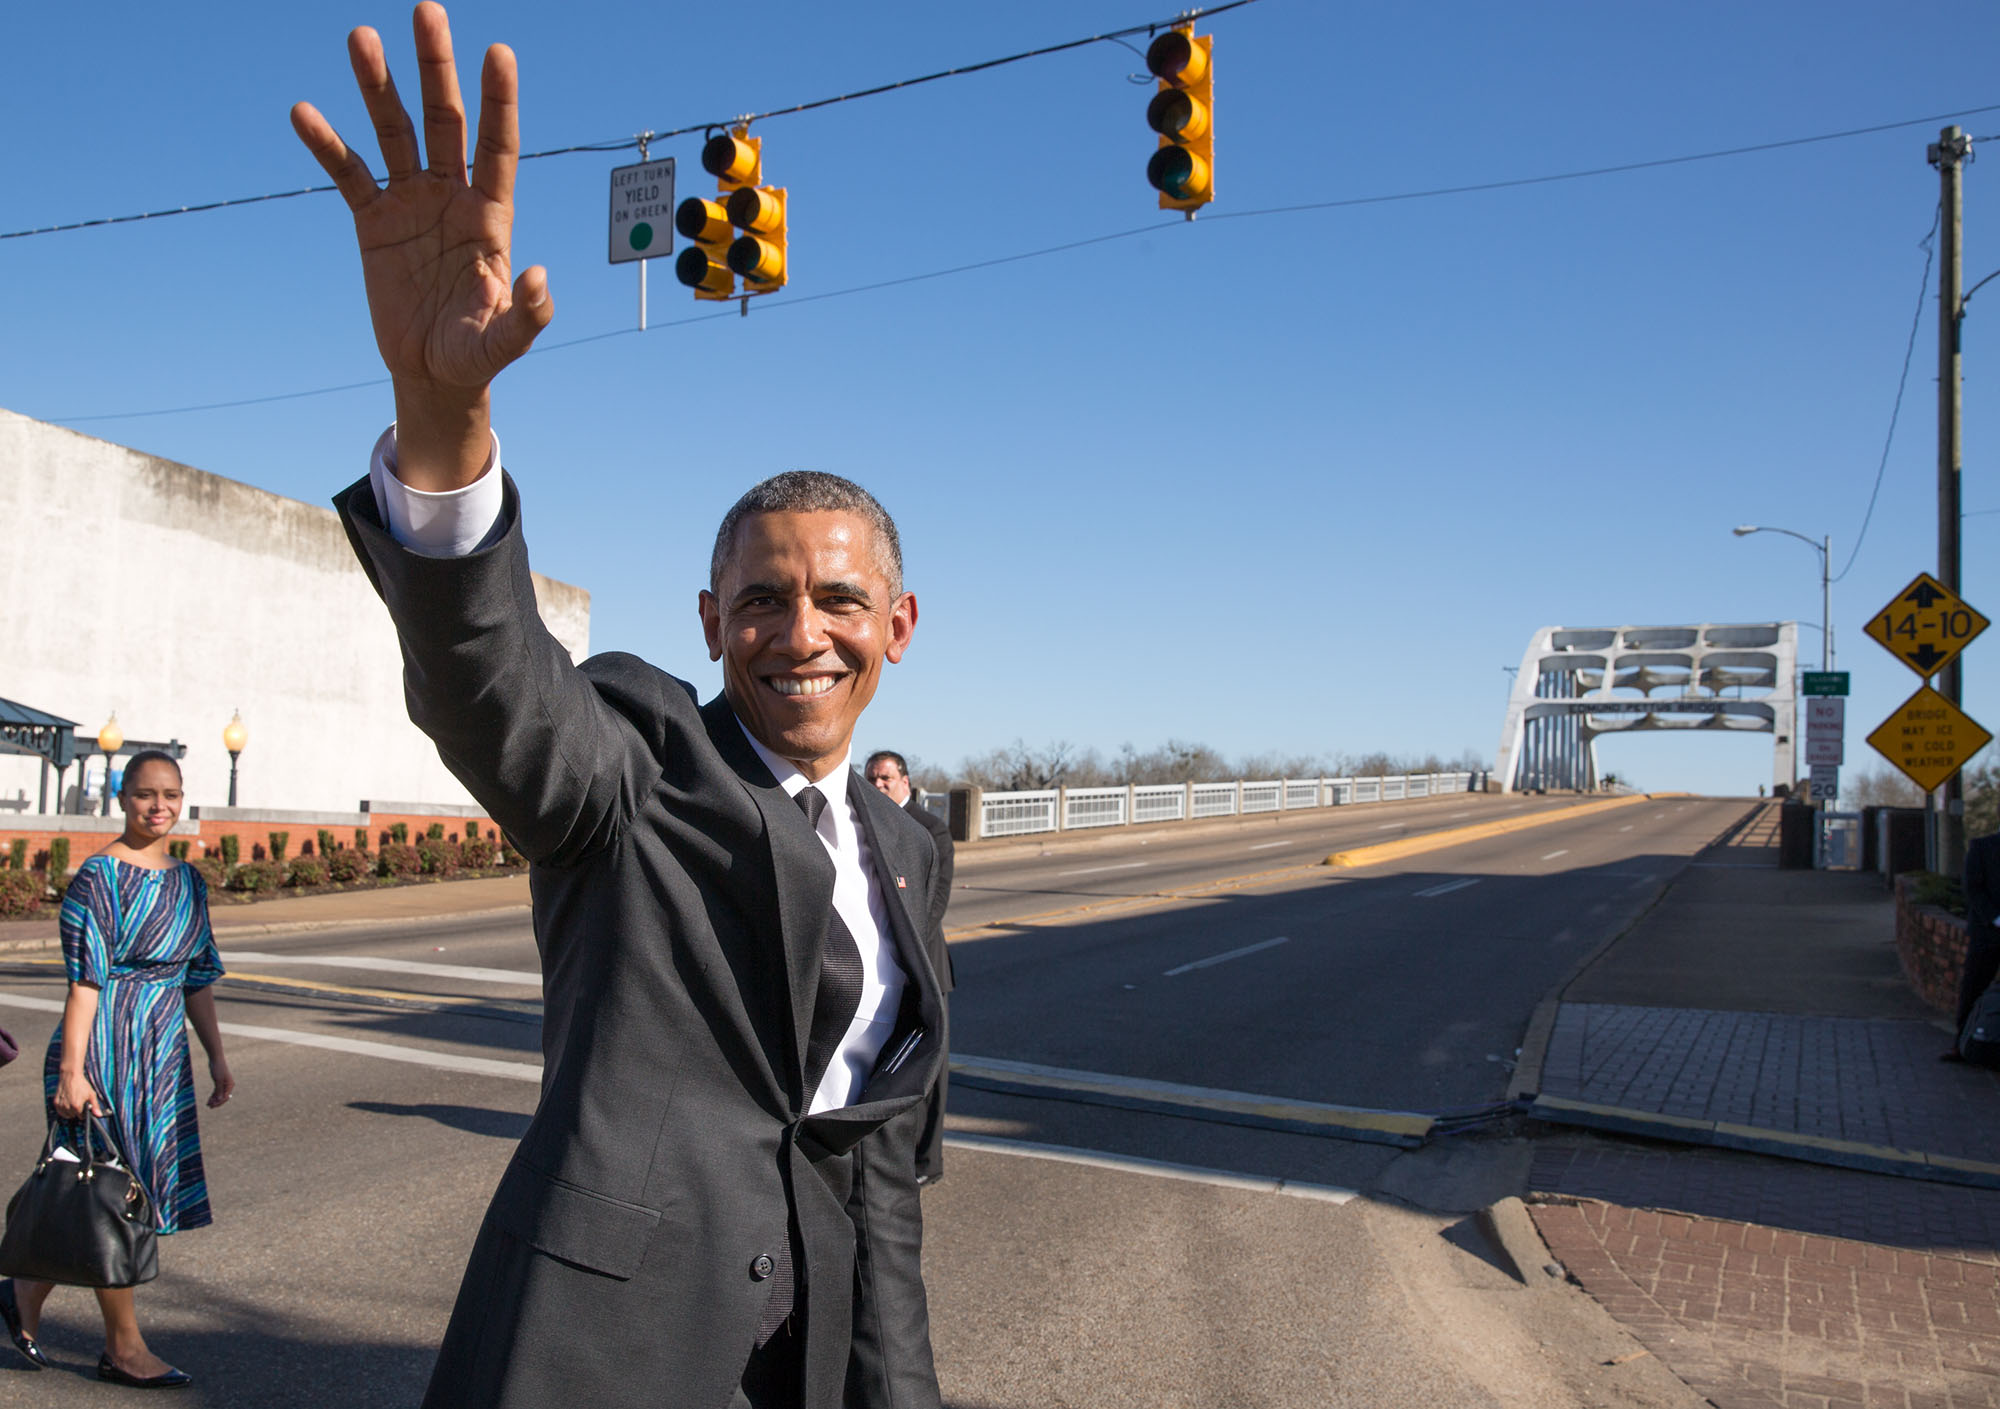 The President waves to the crowd. (Official White House Photo by Pete Souza)